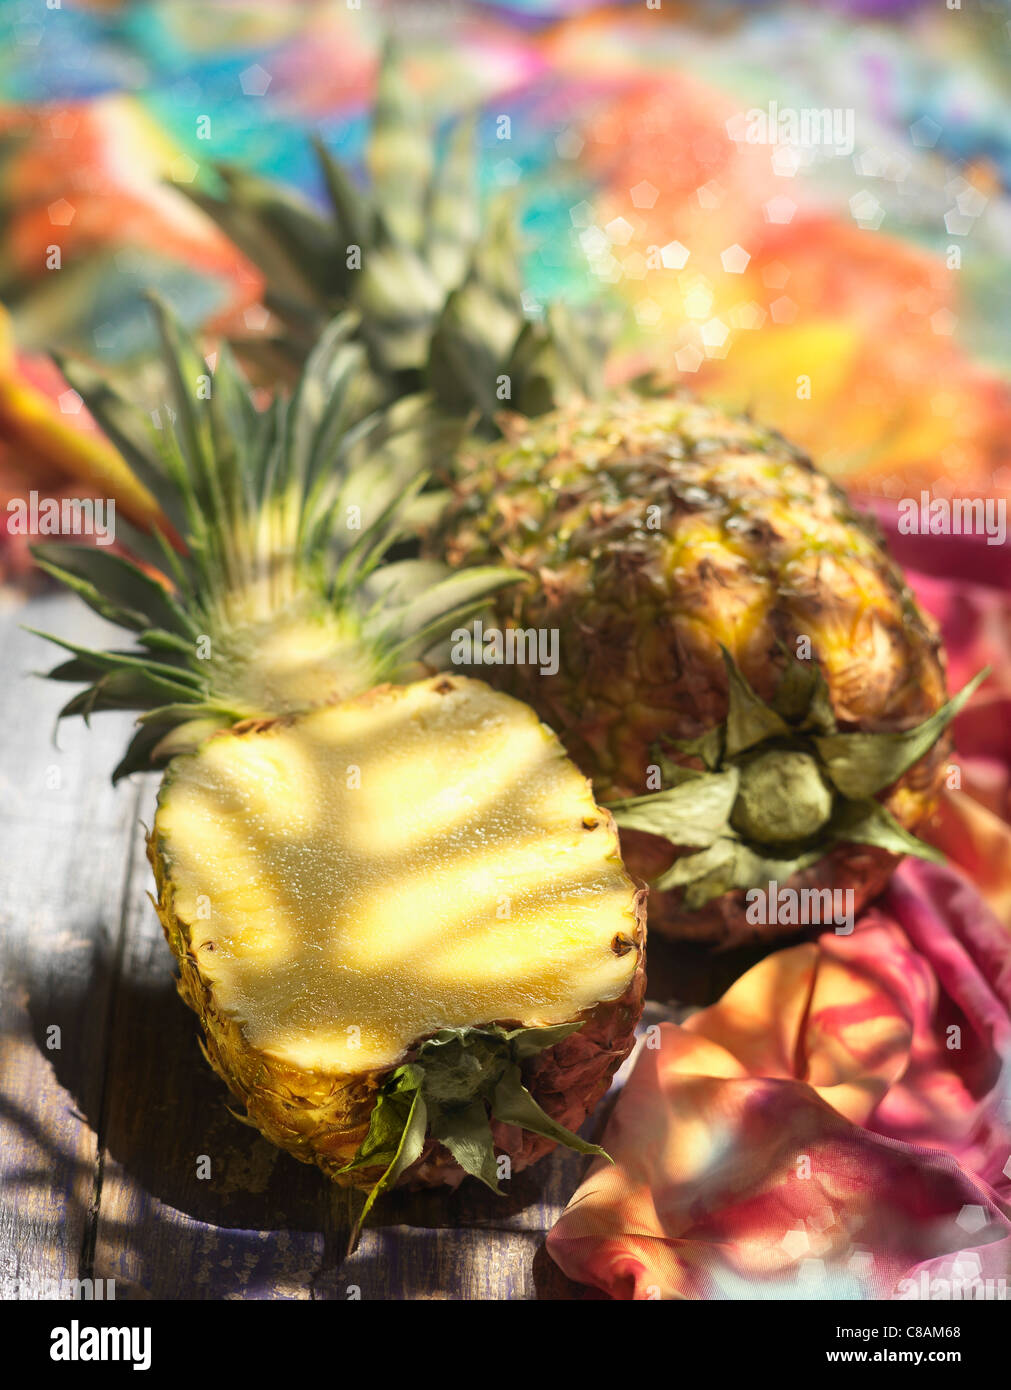 Pineapple cut in half - Stock Image